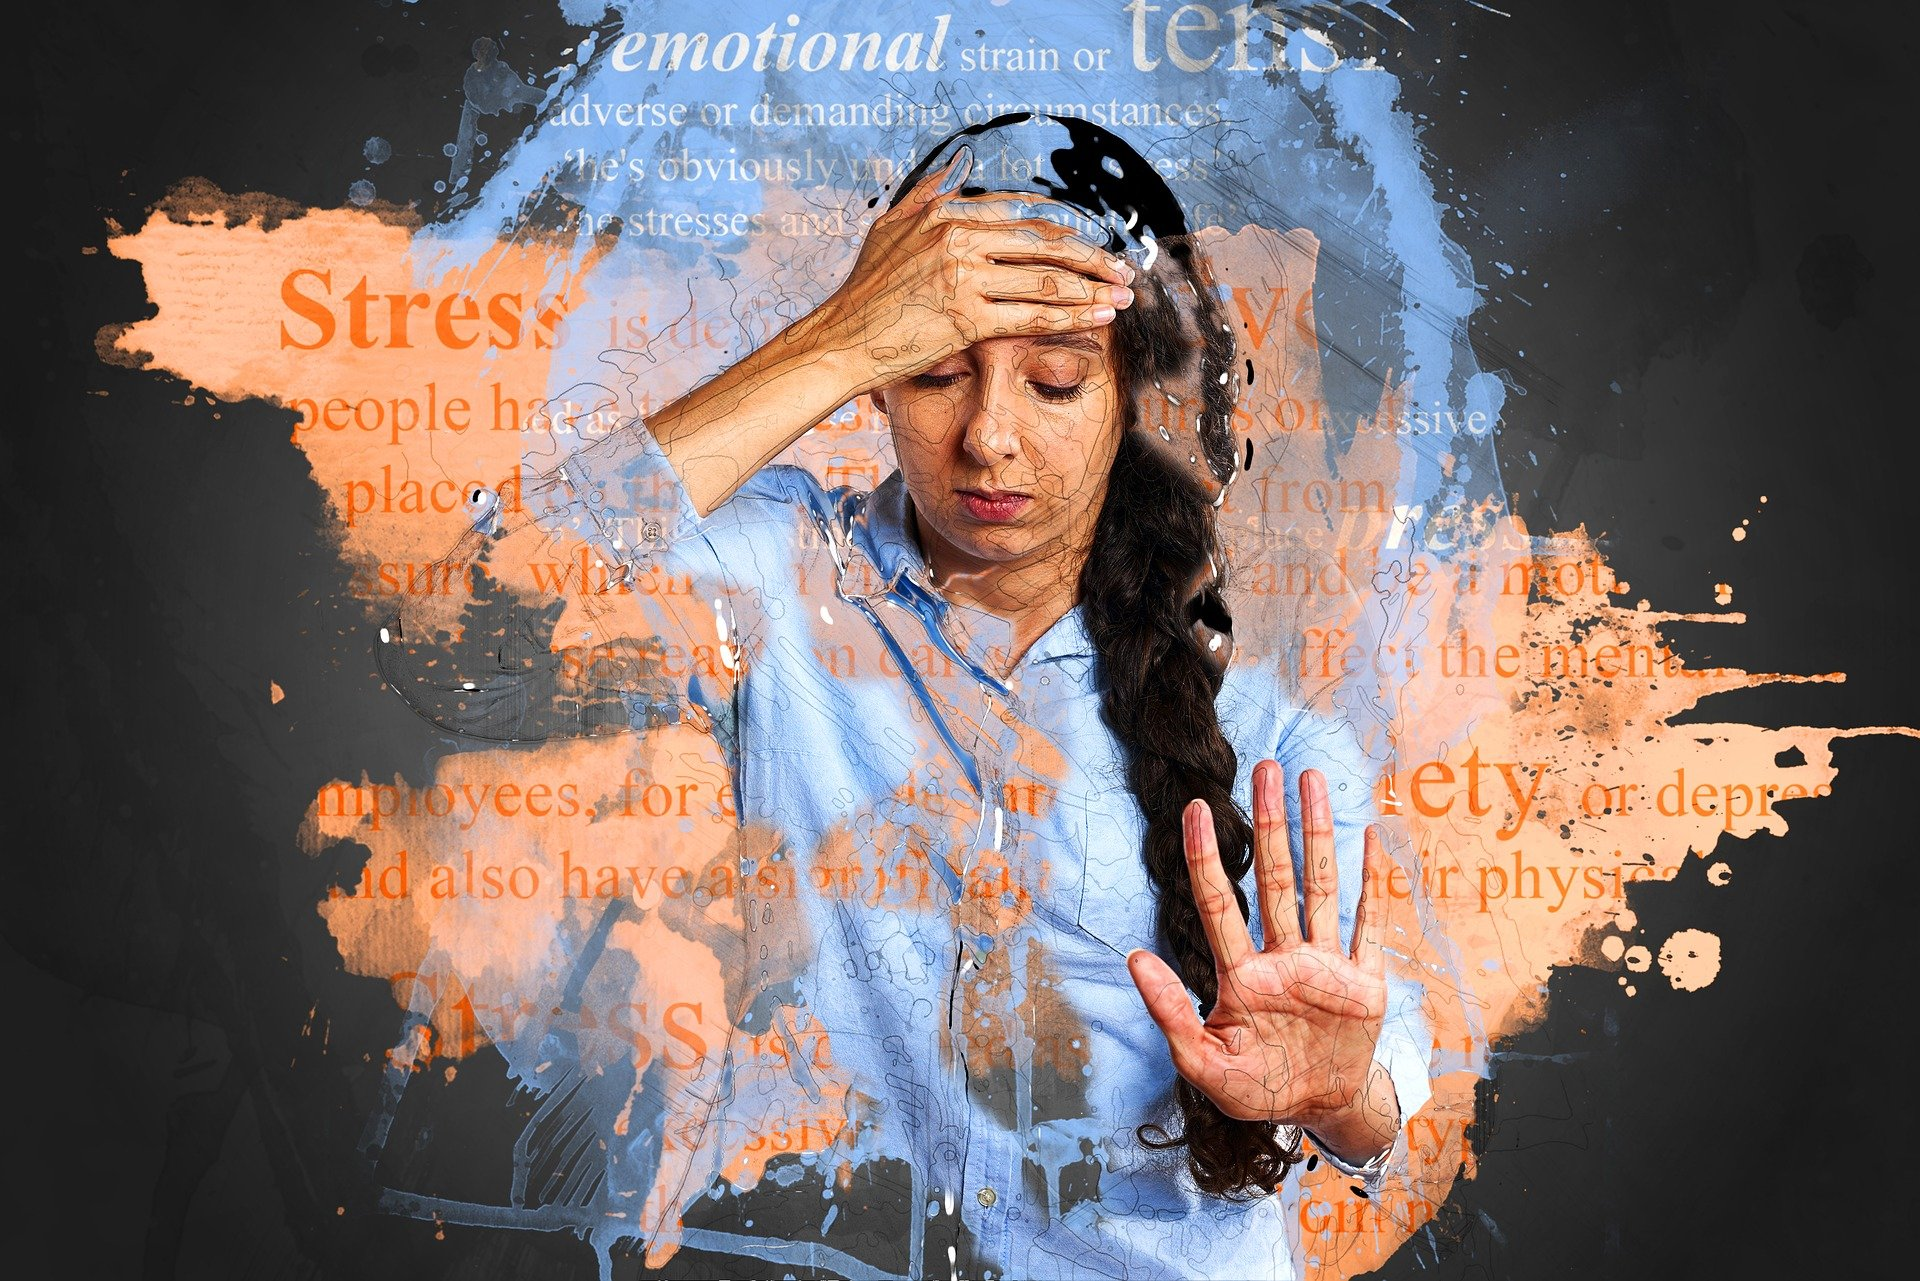 graphical depicition of a stressed woman